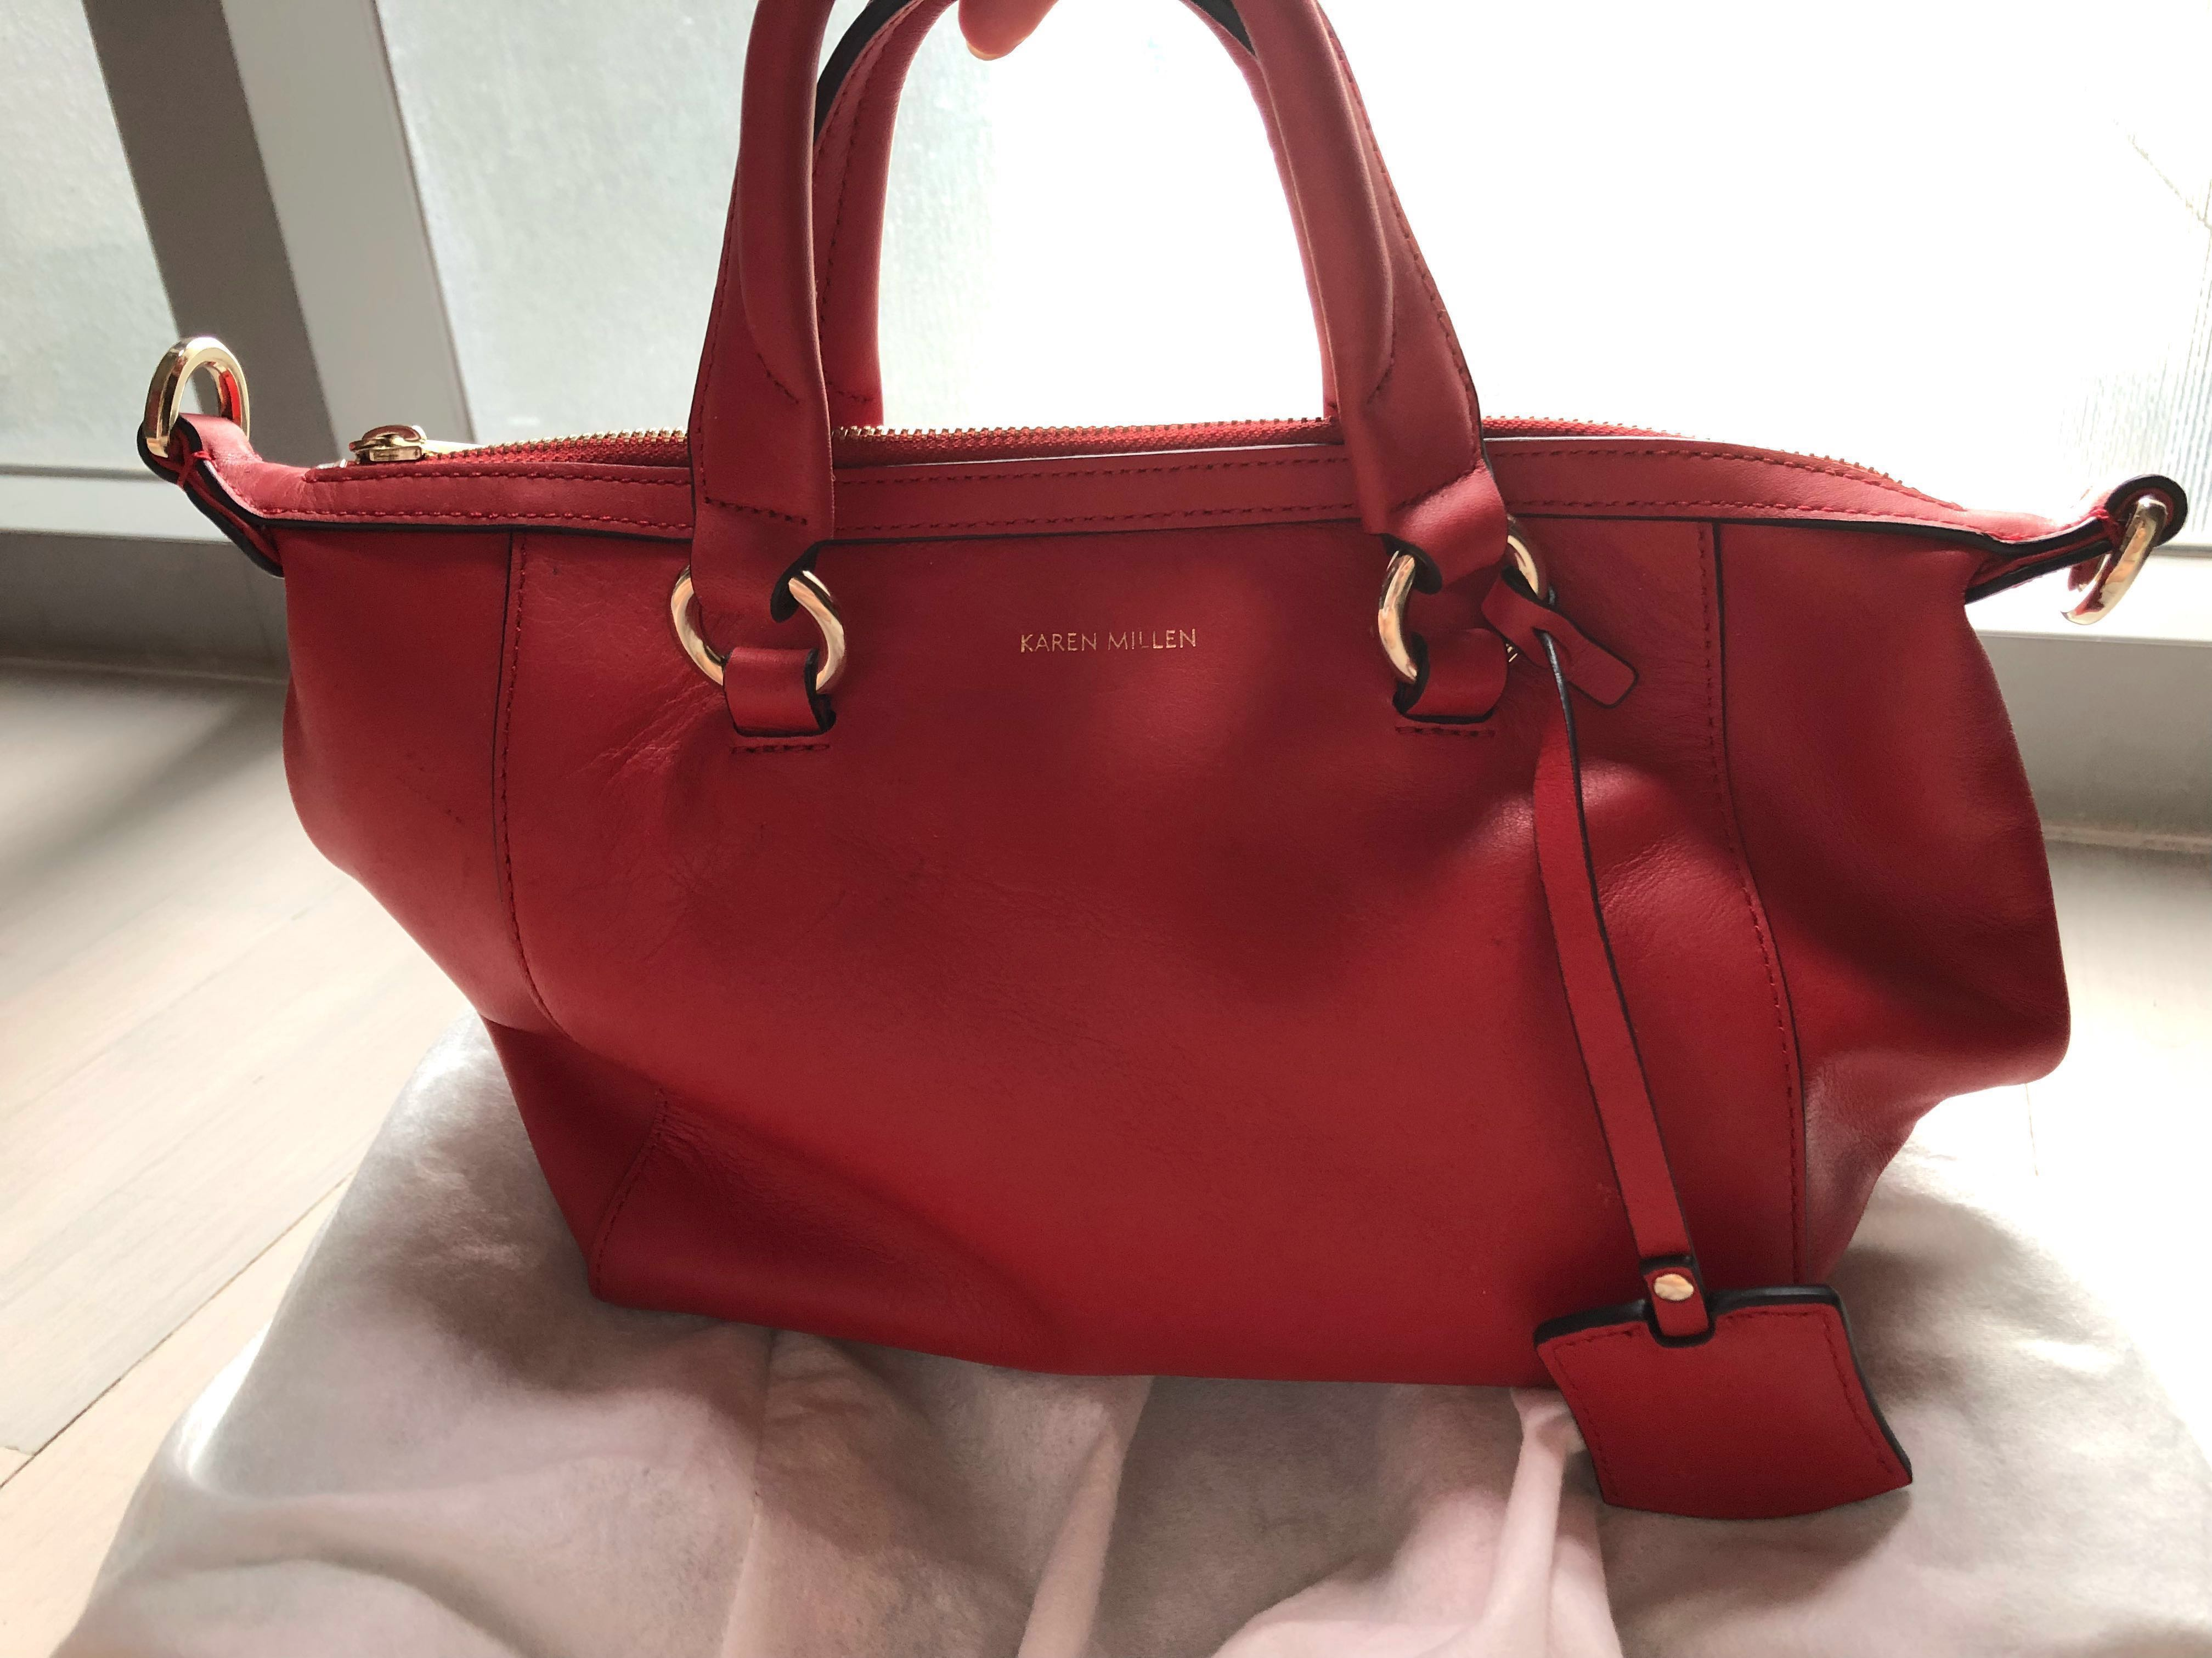 13cf41ba9d Karen Millen chilli red handbag with sling, Women's Fashion, Bags &  Wallets, Handbags on Carousell